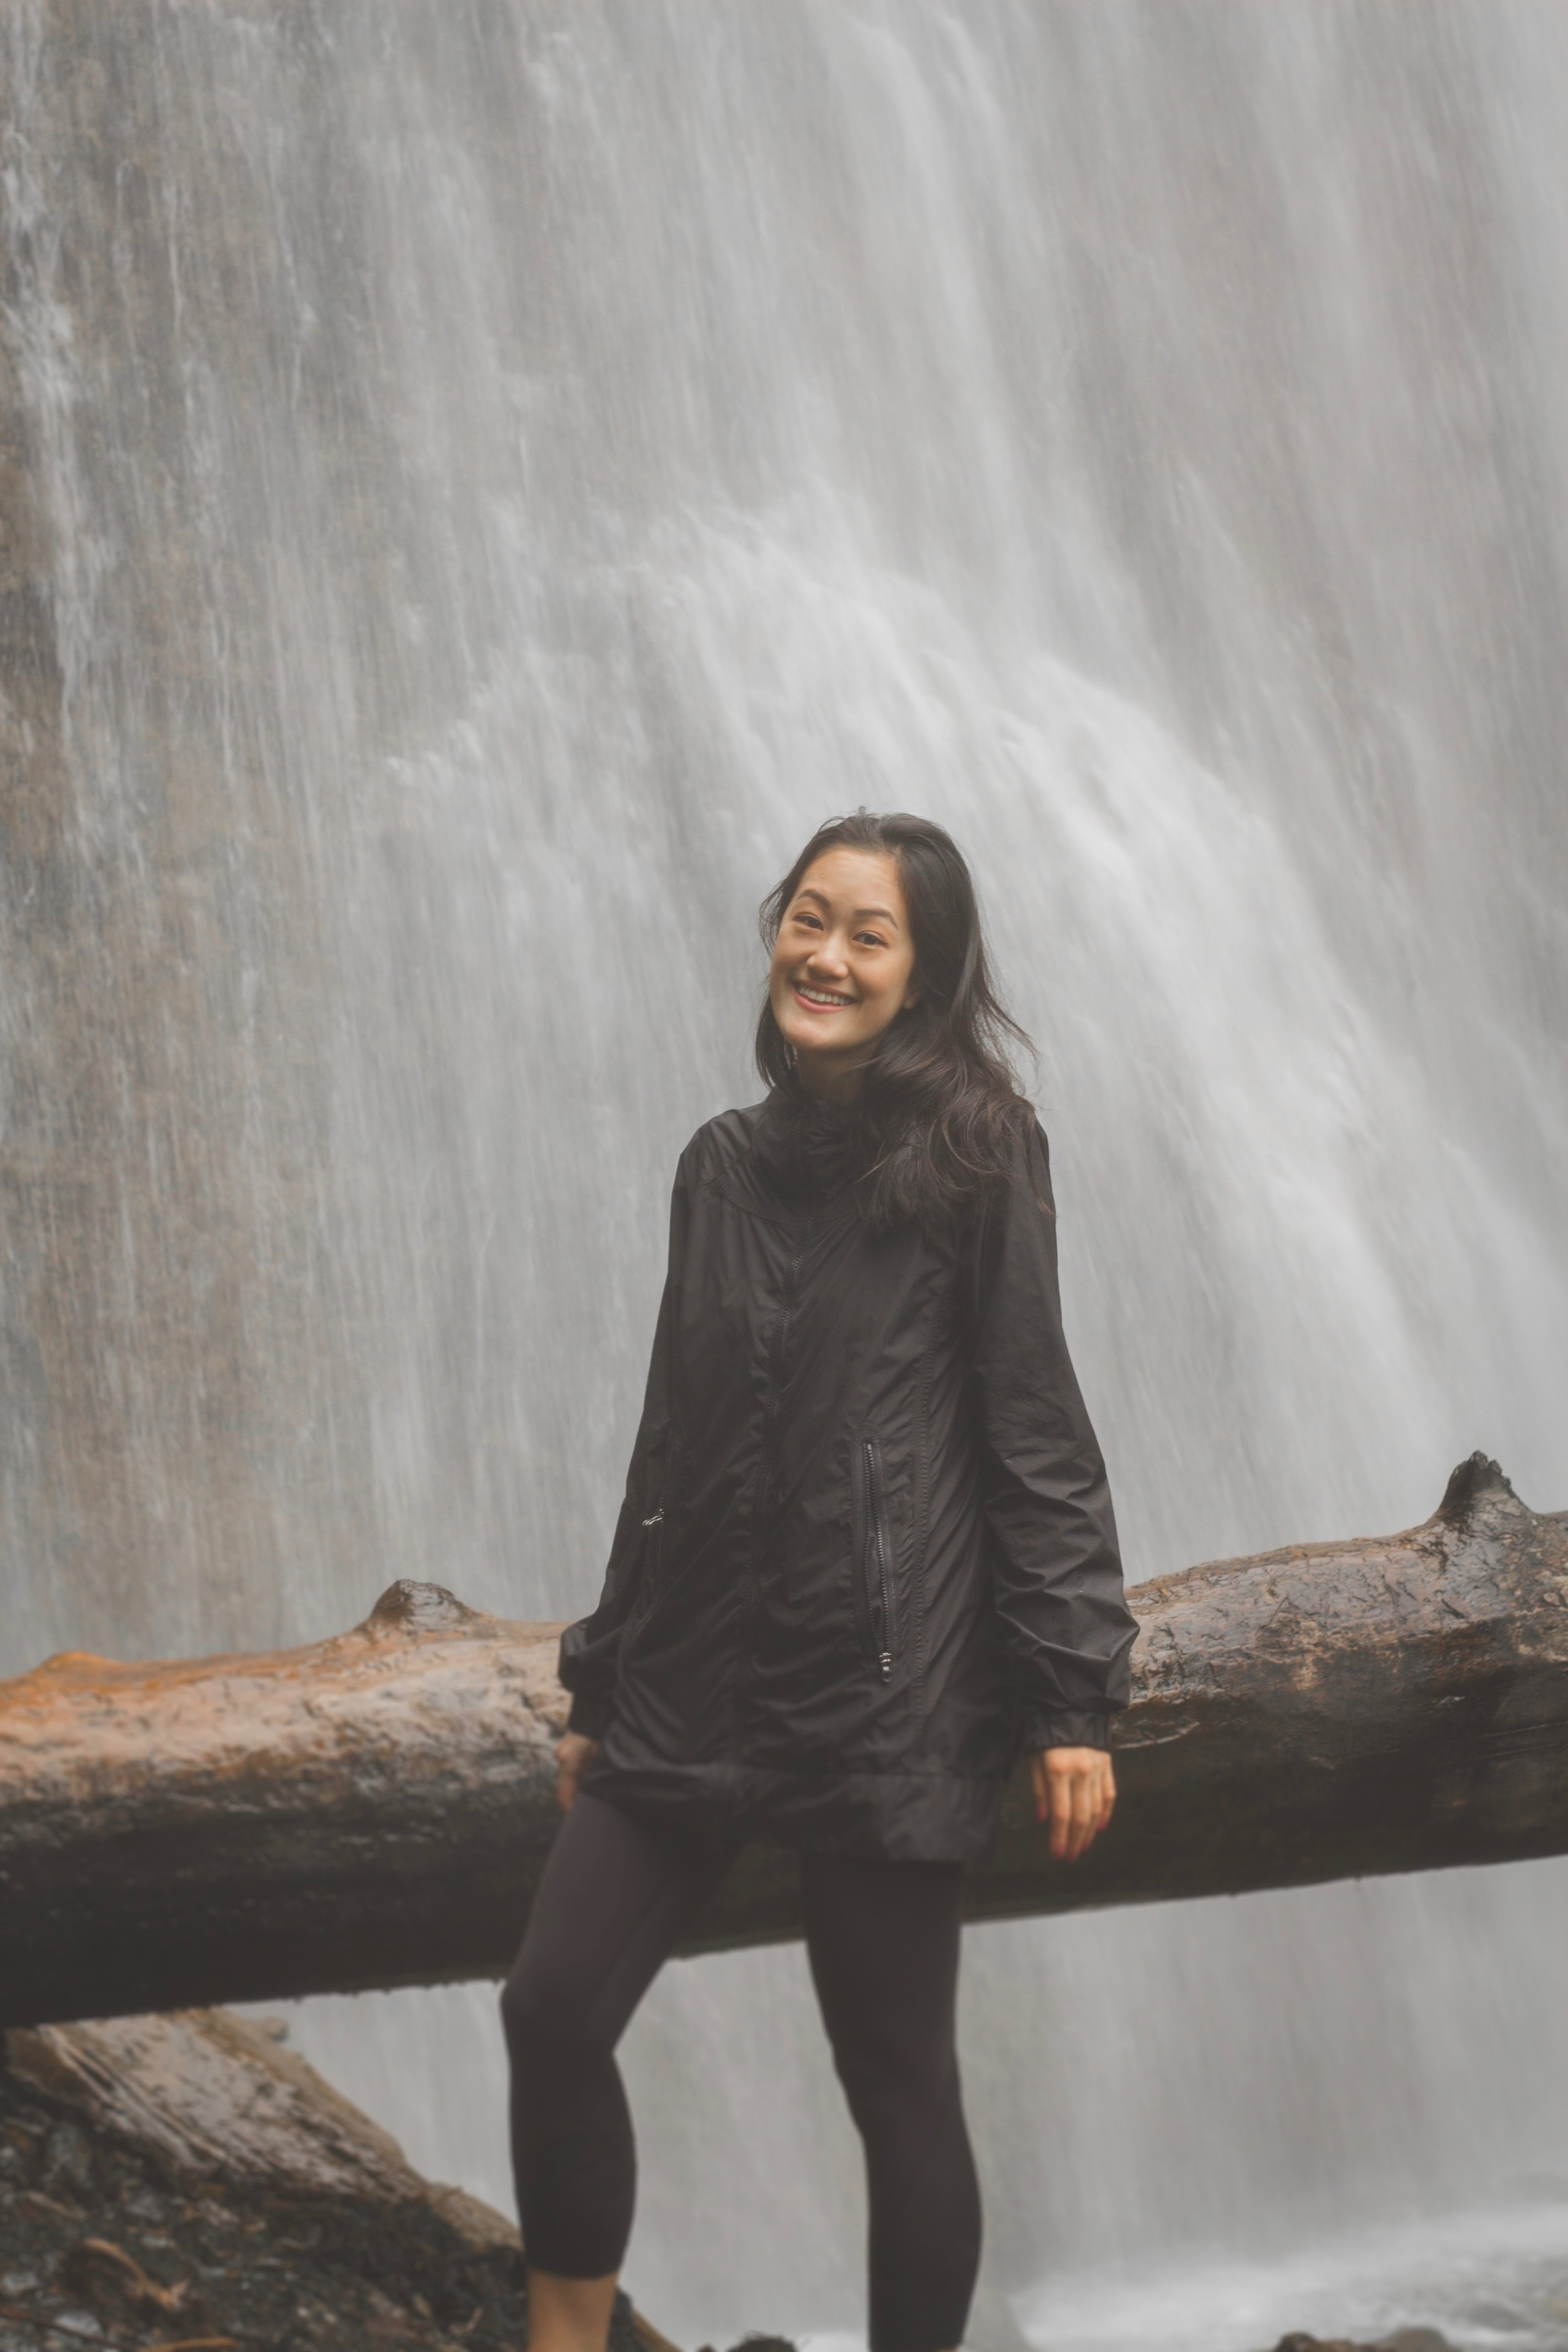 Selina at Brandy Wine Falls in Vancouver, BC. Photo captured by  Emel Photography .